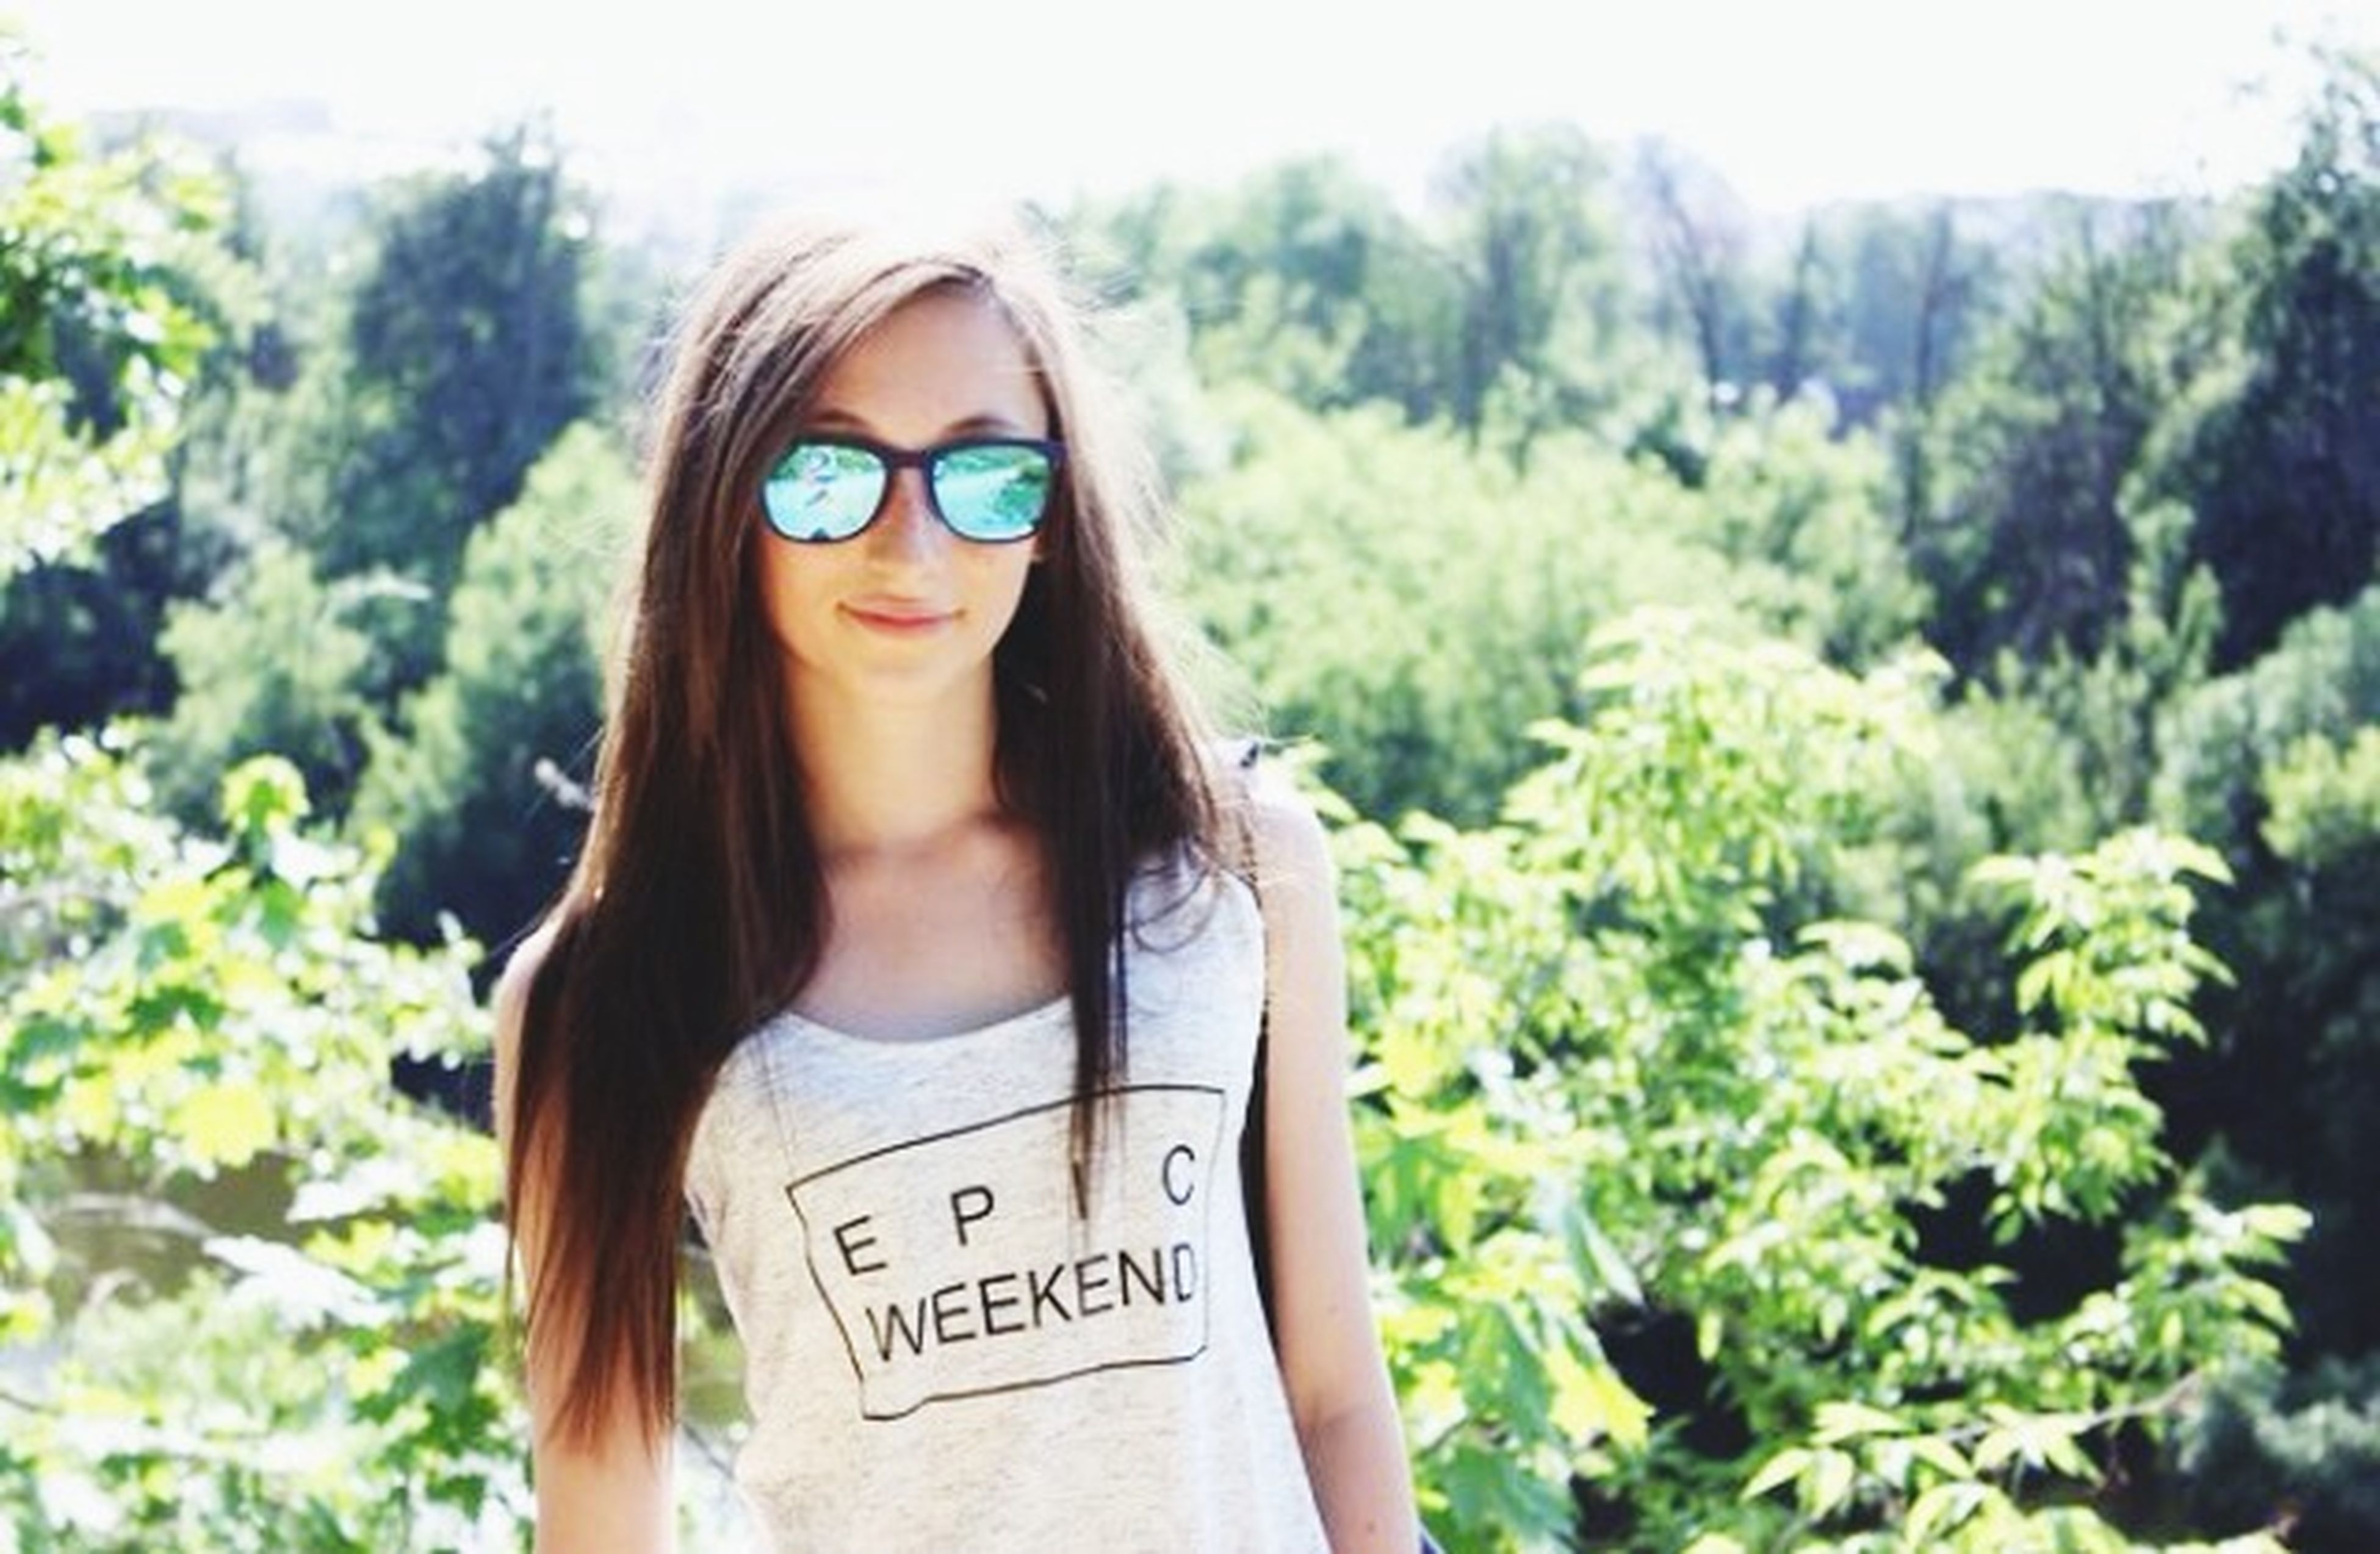 young adult, looking at camera, portrait, person, young women, lifestyles, leisure activity, front view, smiling, casual clothing, tree, long hair, sunglasses, focus on foreground, headshot, waist up, happiness